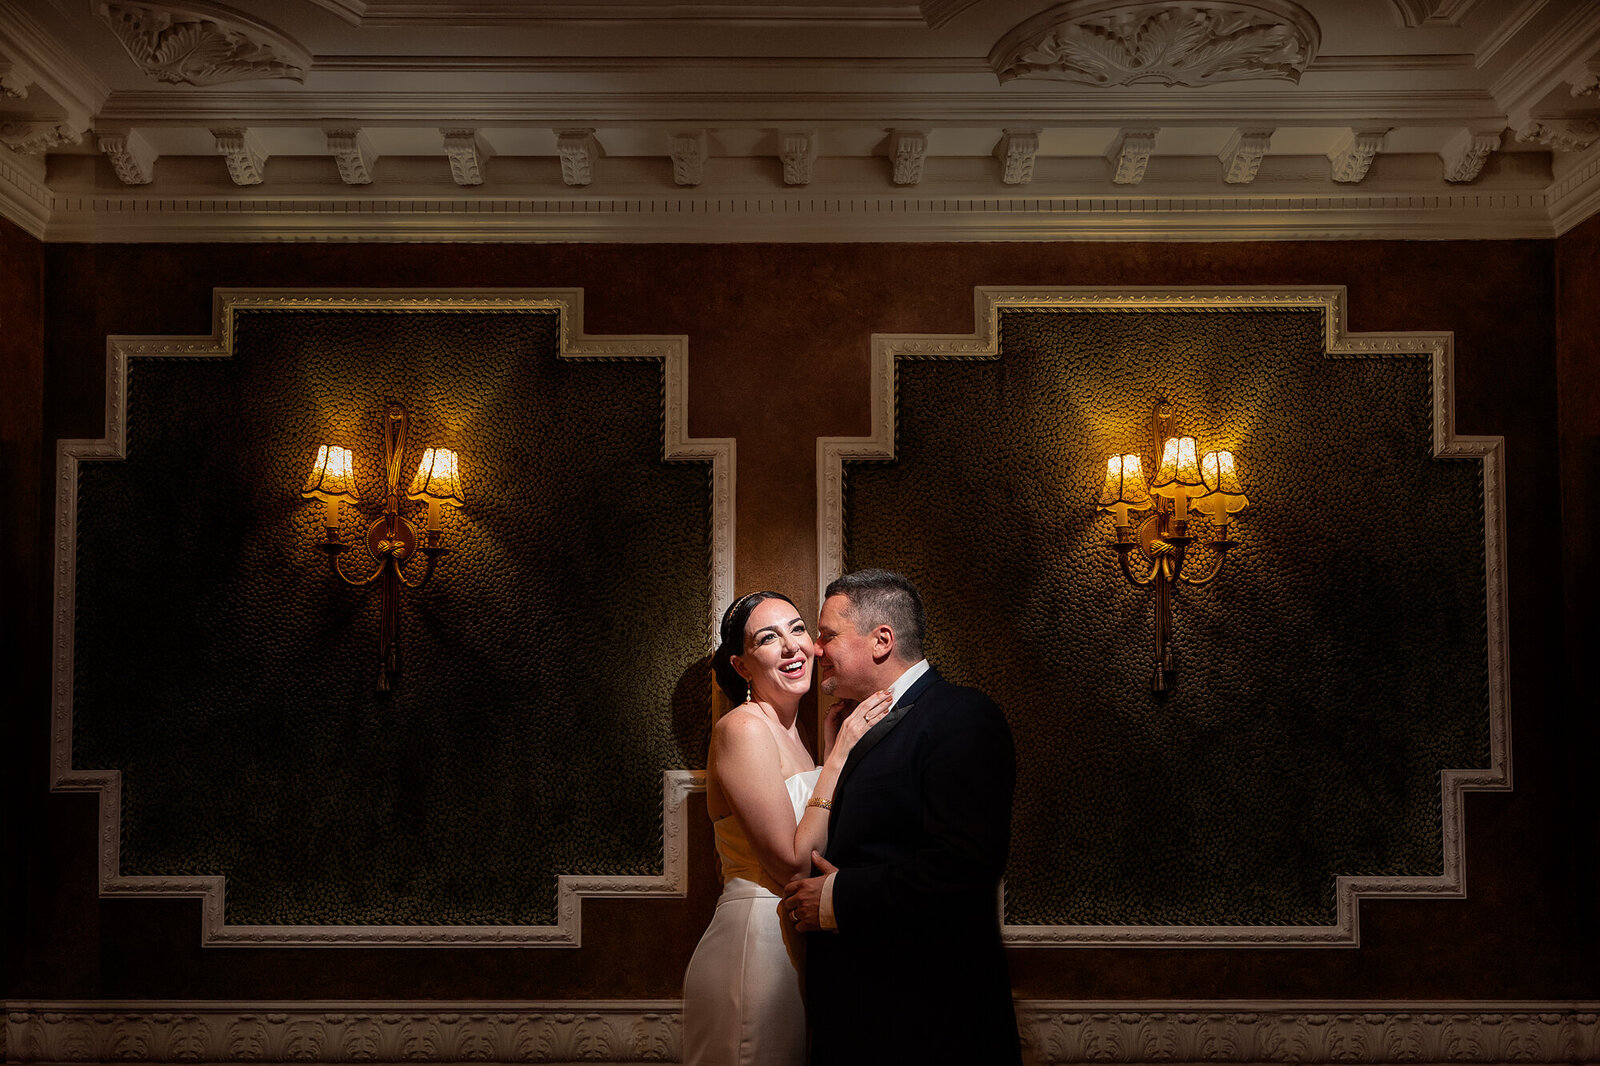 a beide and groom in front of a fabric textured wall and sconces at the Brownstone wedding venue